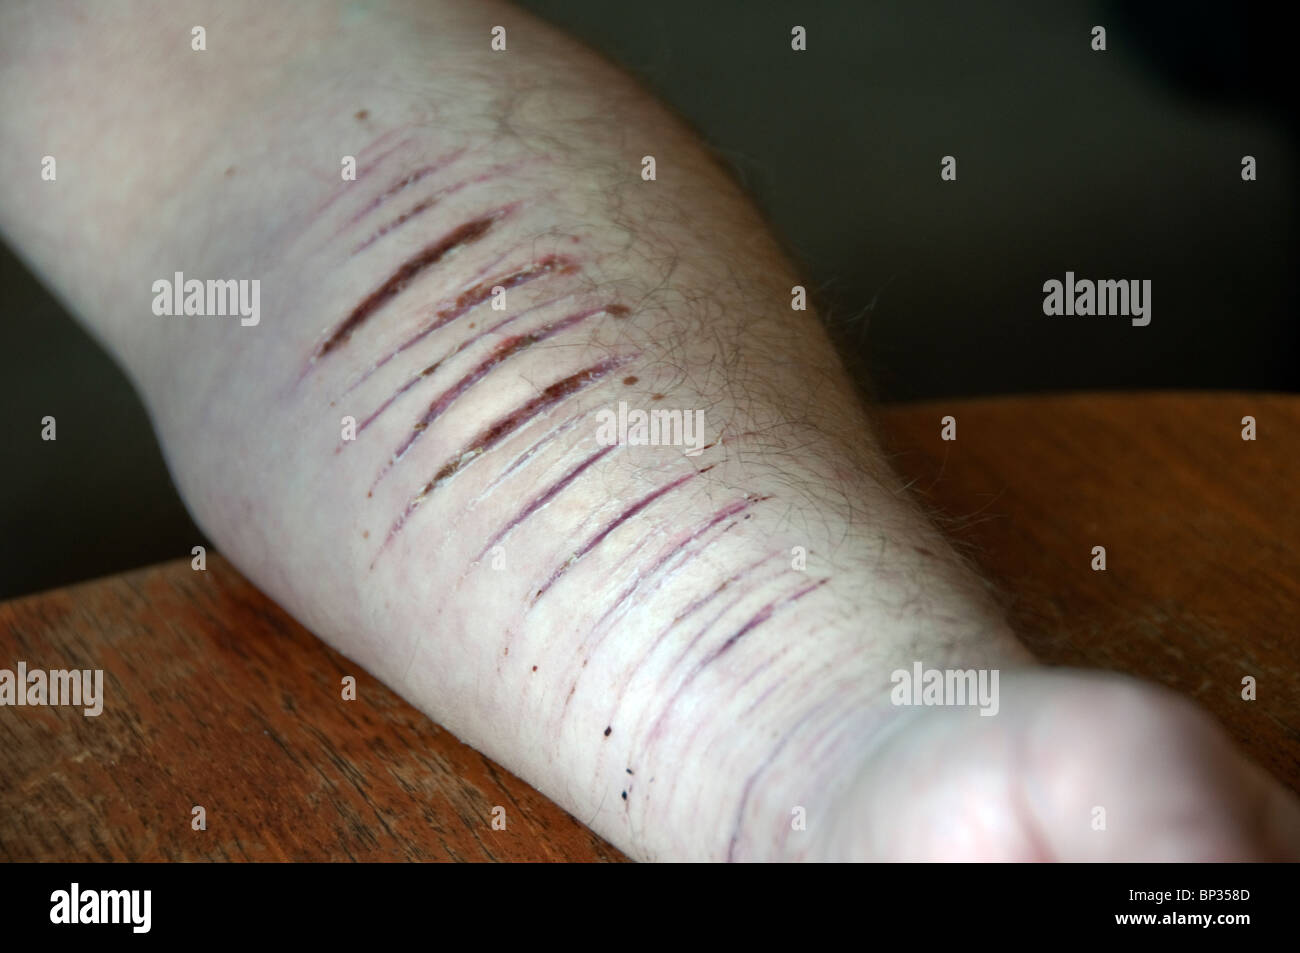 Extremely depressed young man self harming and suicidal. Stock Photo